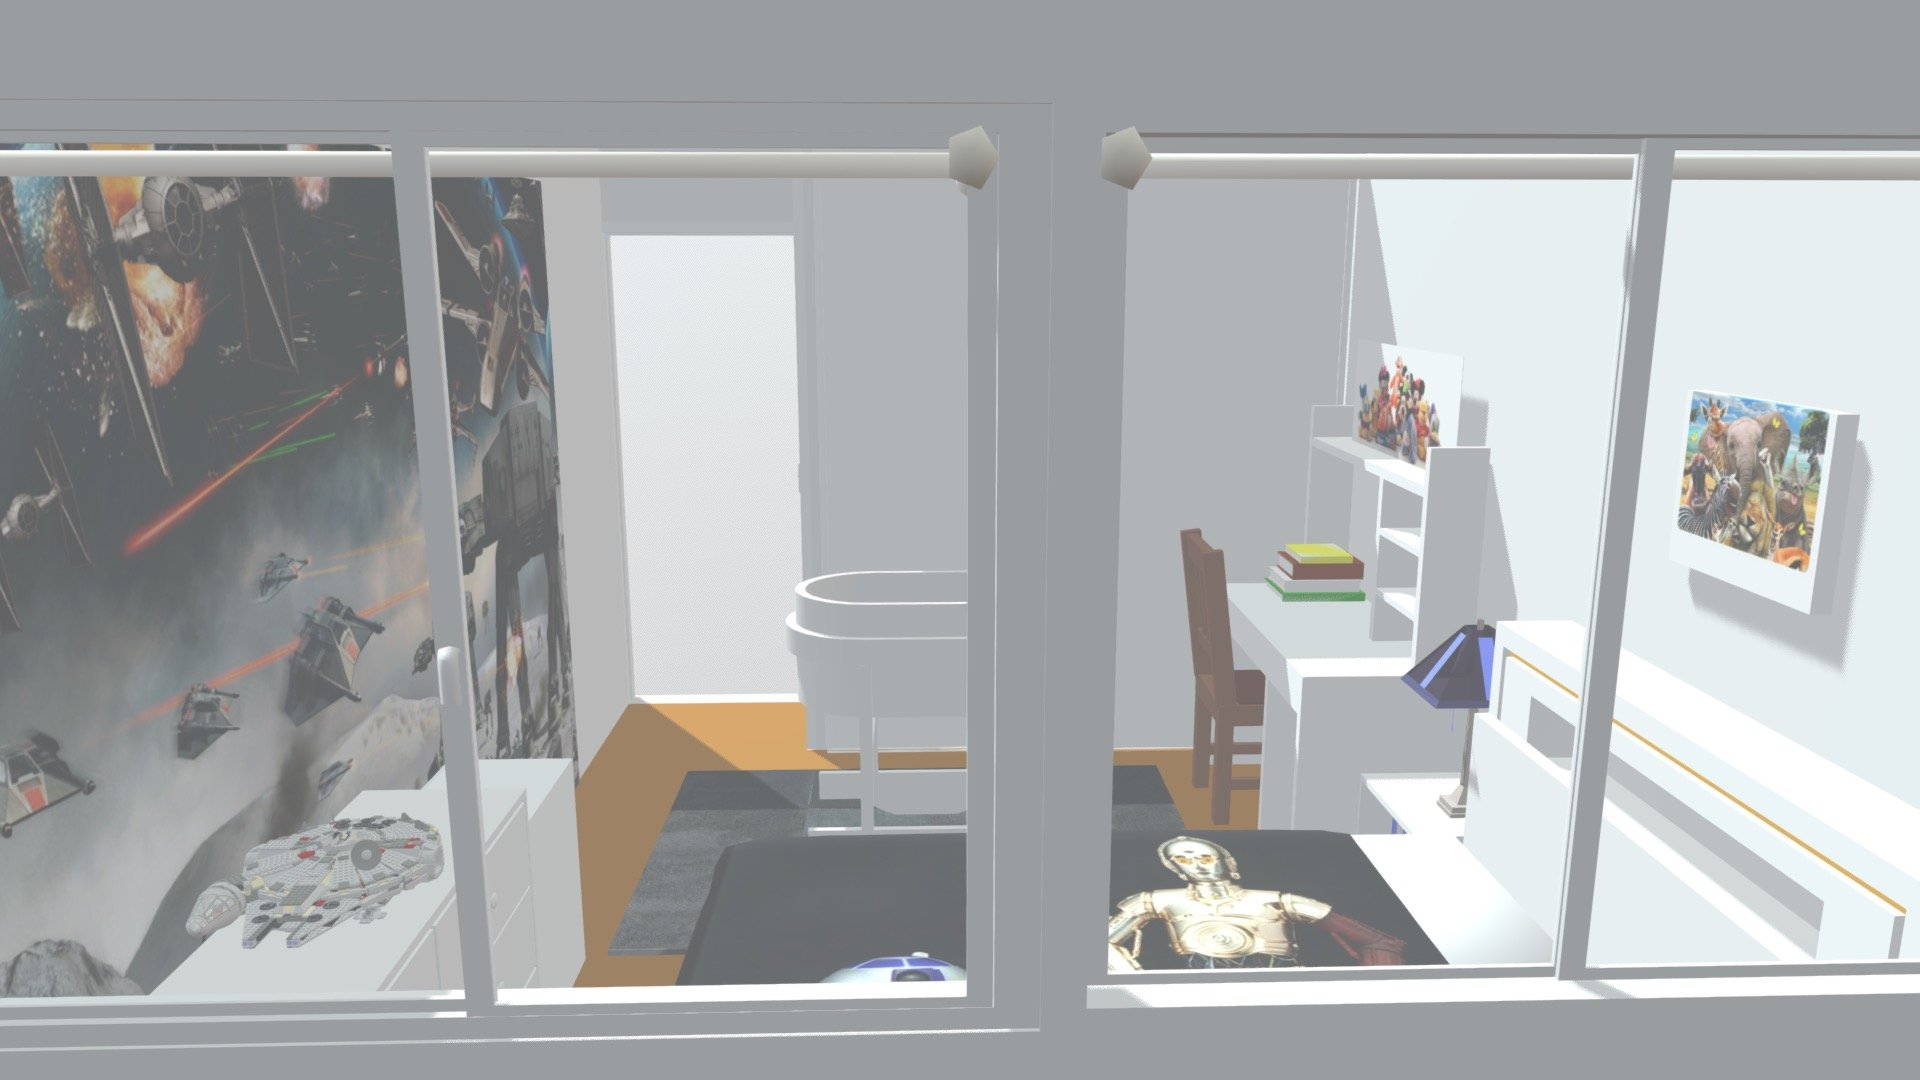 Kid's Room Design - Download Free 3D model by AwesomeClub ...